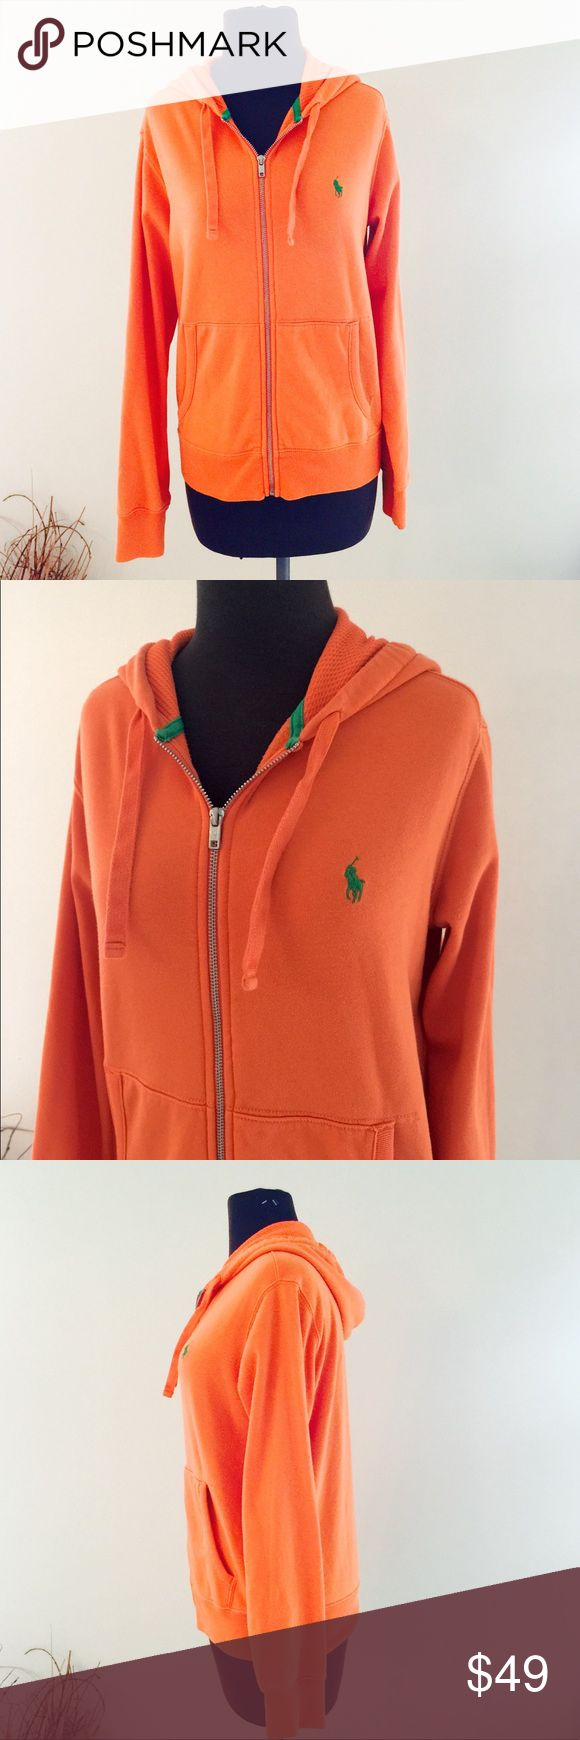 ❗️Ralph Lauren Orange Zip Up Hoodie MSRP $118 ❗️Ralph Lauren Orange Zip Up Hoodie with green accents. Retails $118. Size small. Feel free to make an offer! I'm giving to the first reasonable offer I receive & give great bundle deals! Moving cleanout sale--all must go! ;-) Ralph Lauren Tops Sweatshirts & Hoodies